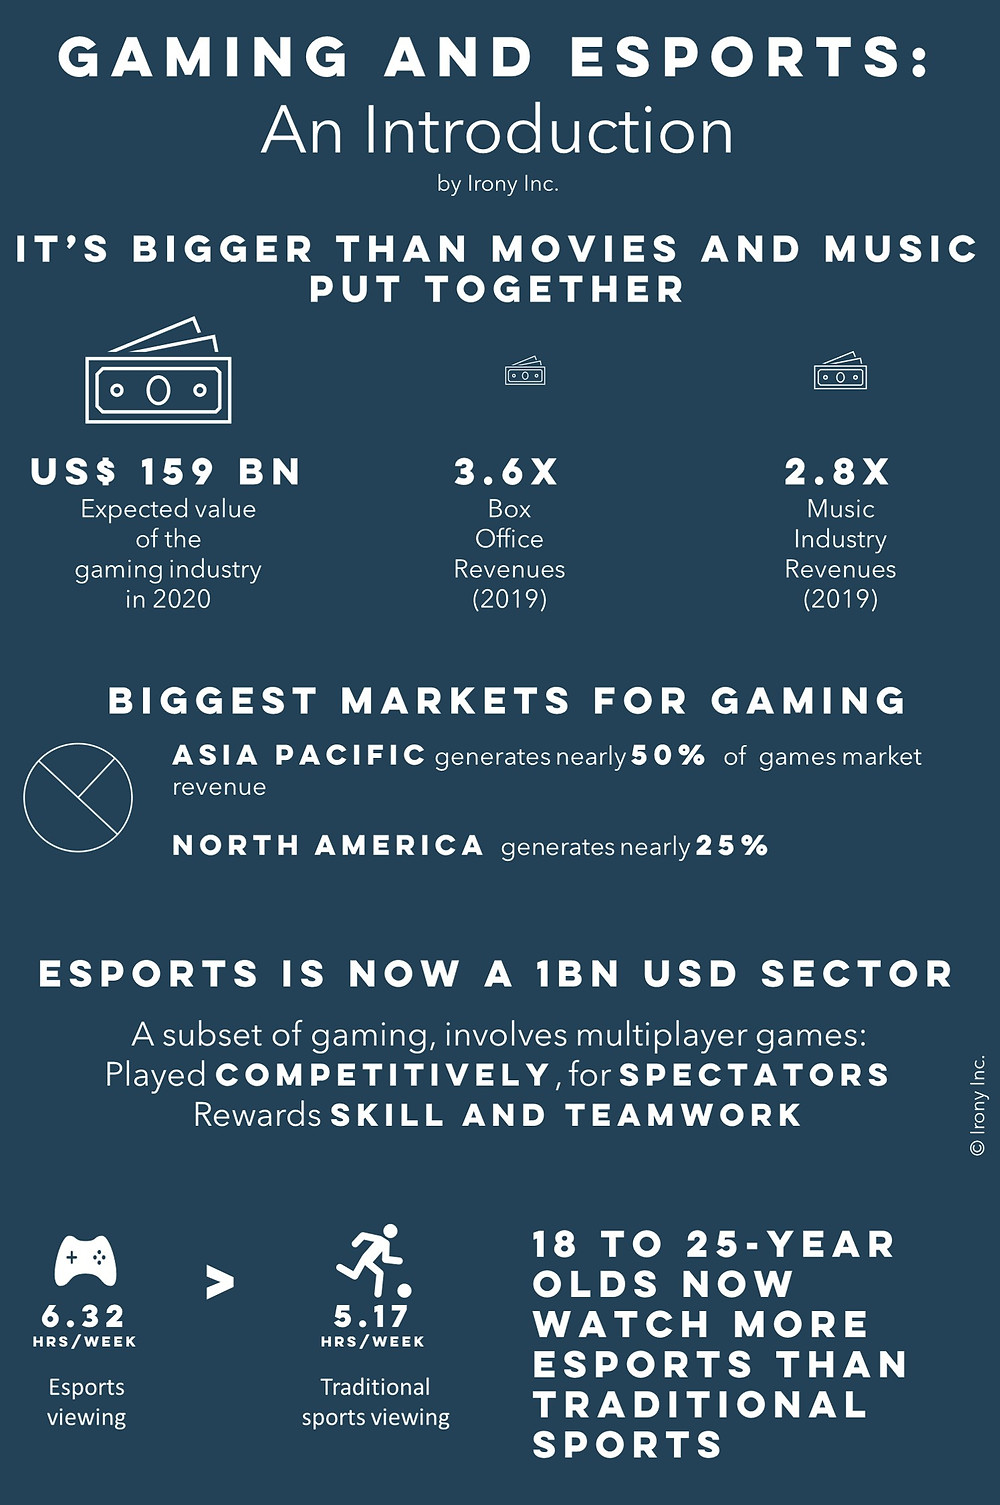 Gaming is bigger than movies and music industries put together. Esports is now a 1Bn USD sector